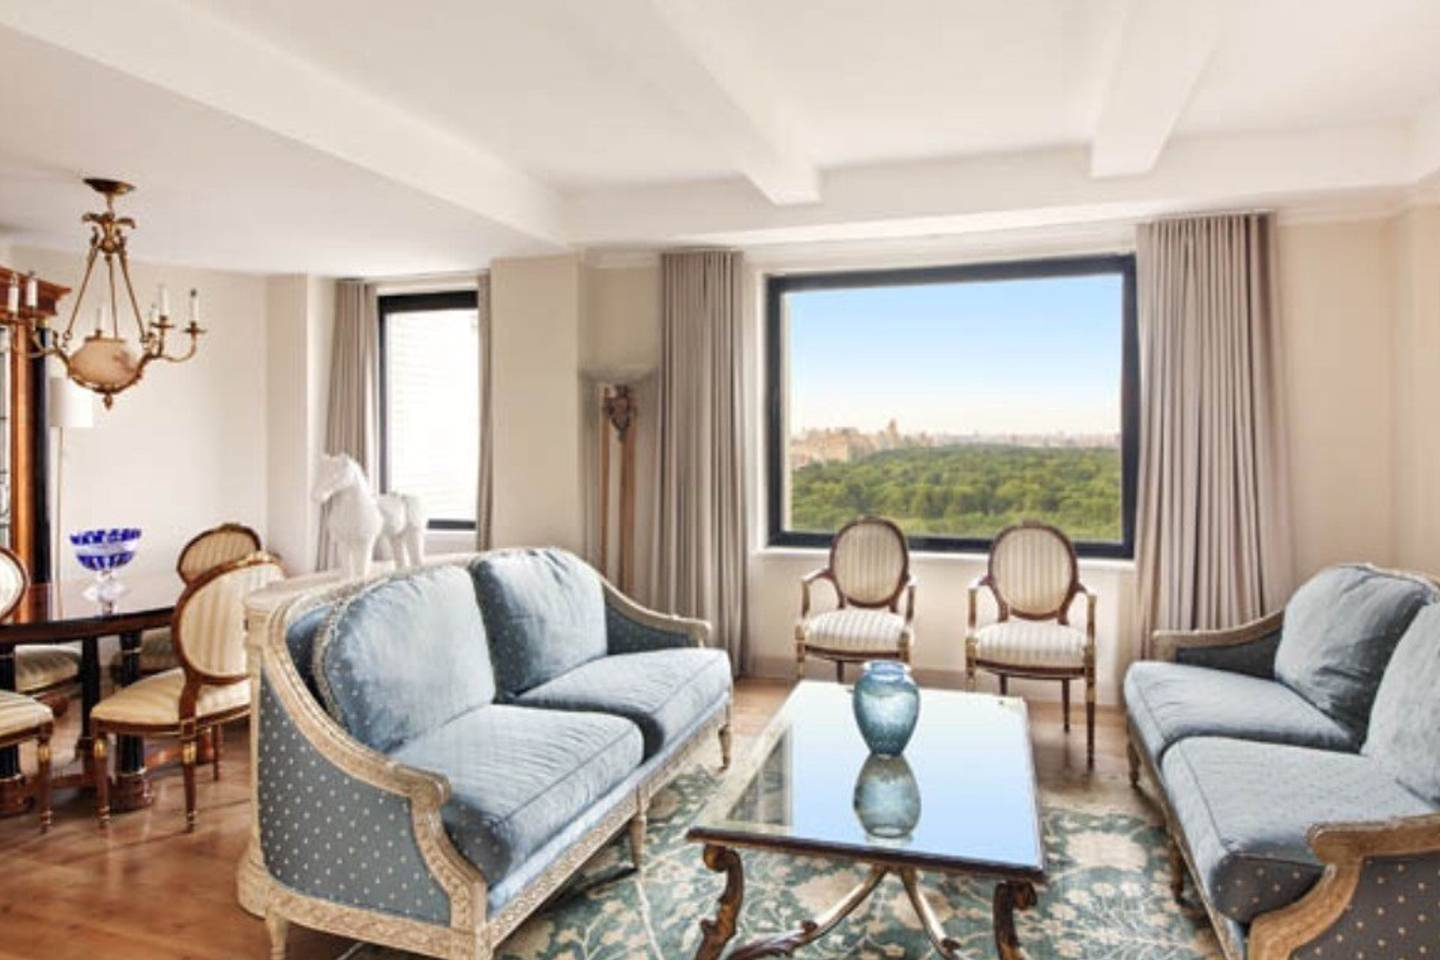 new york luxury property with stunning views of central park airbnb